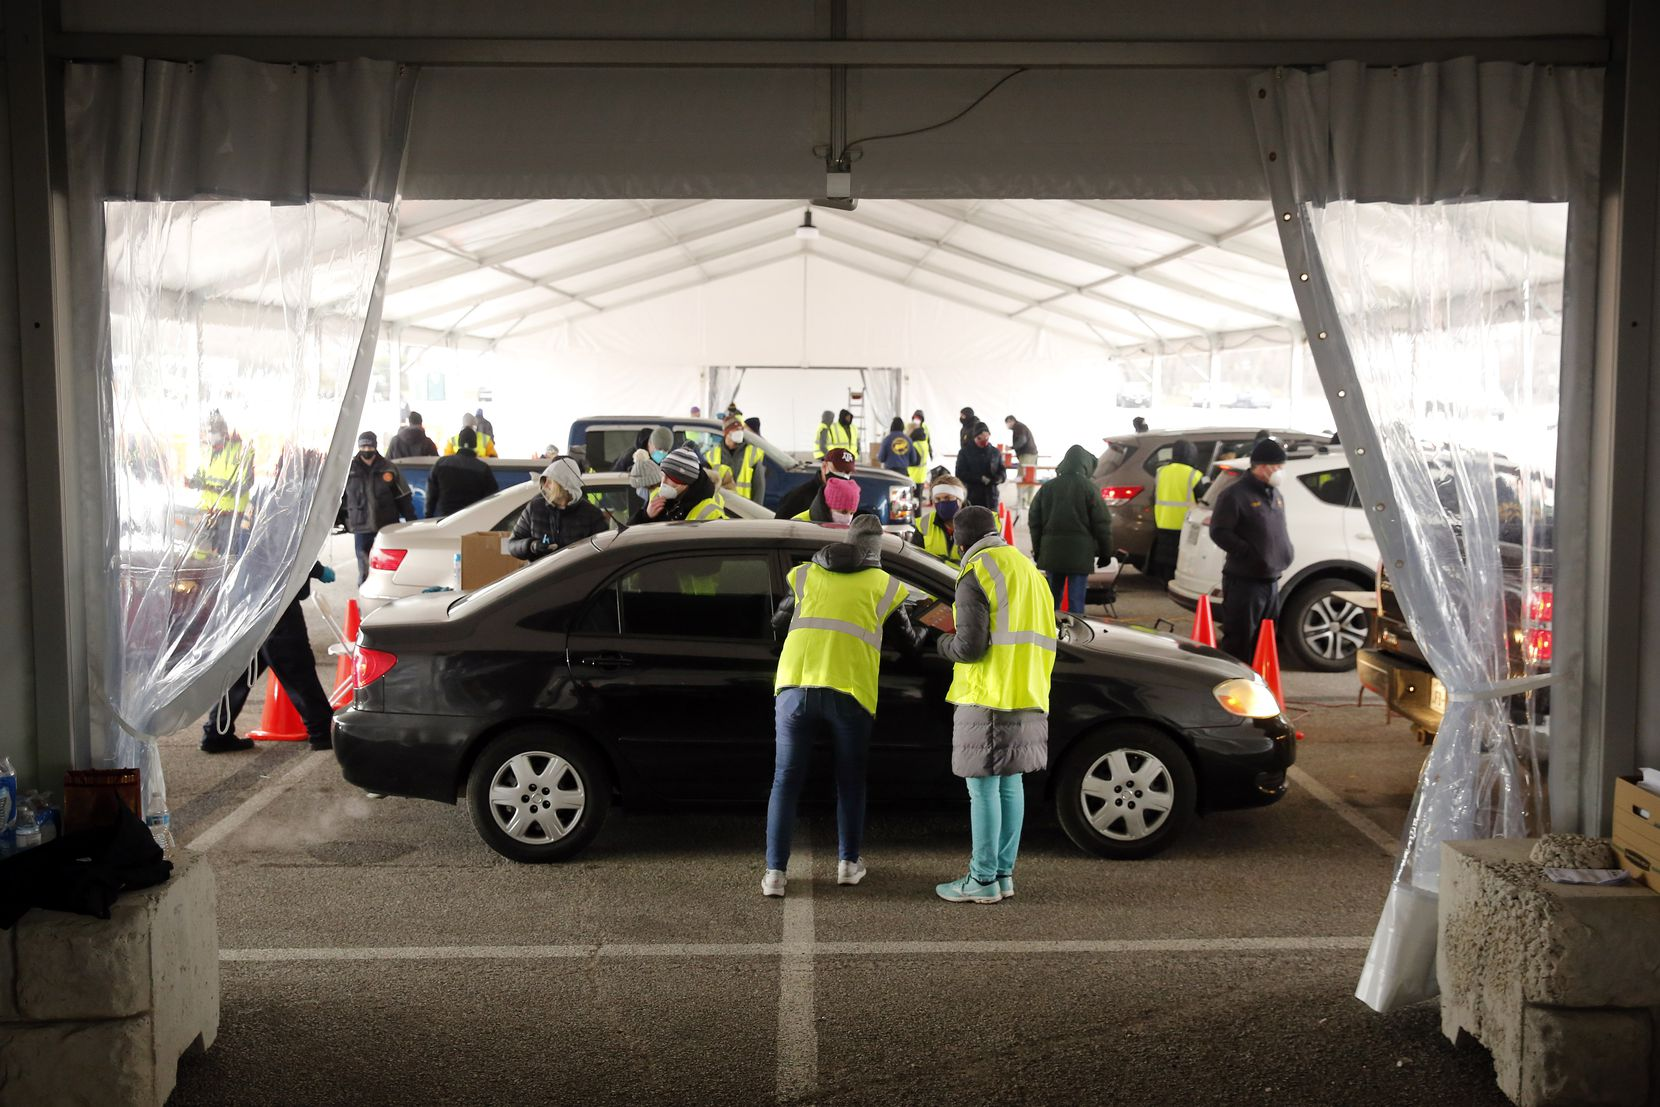 Large drive-thru tents have been set up to handle the thousands of people lined up for COVID-19 vaccinations at Fair Park in Dallas, Wednesday, February 10, 2021. (Tom Fox/The Dallas Morning News)